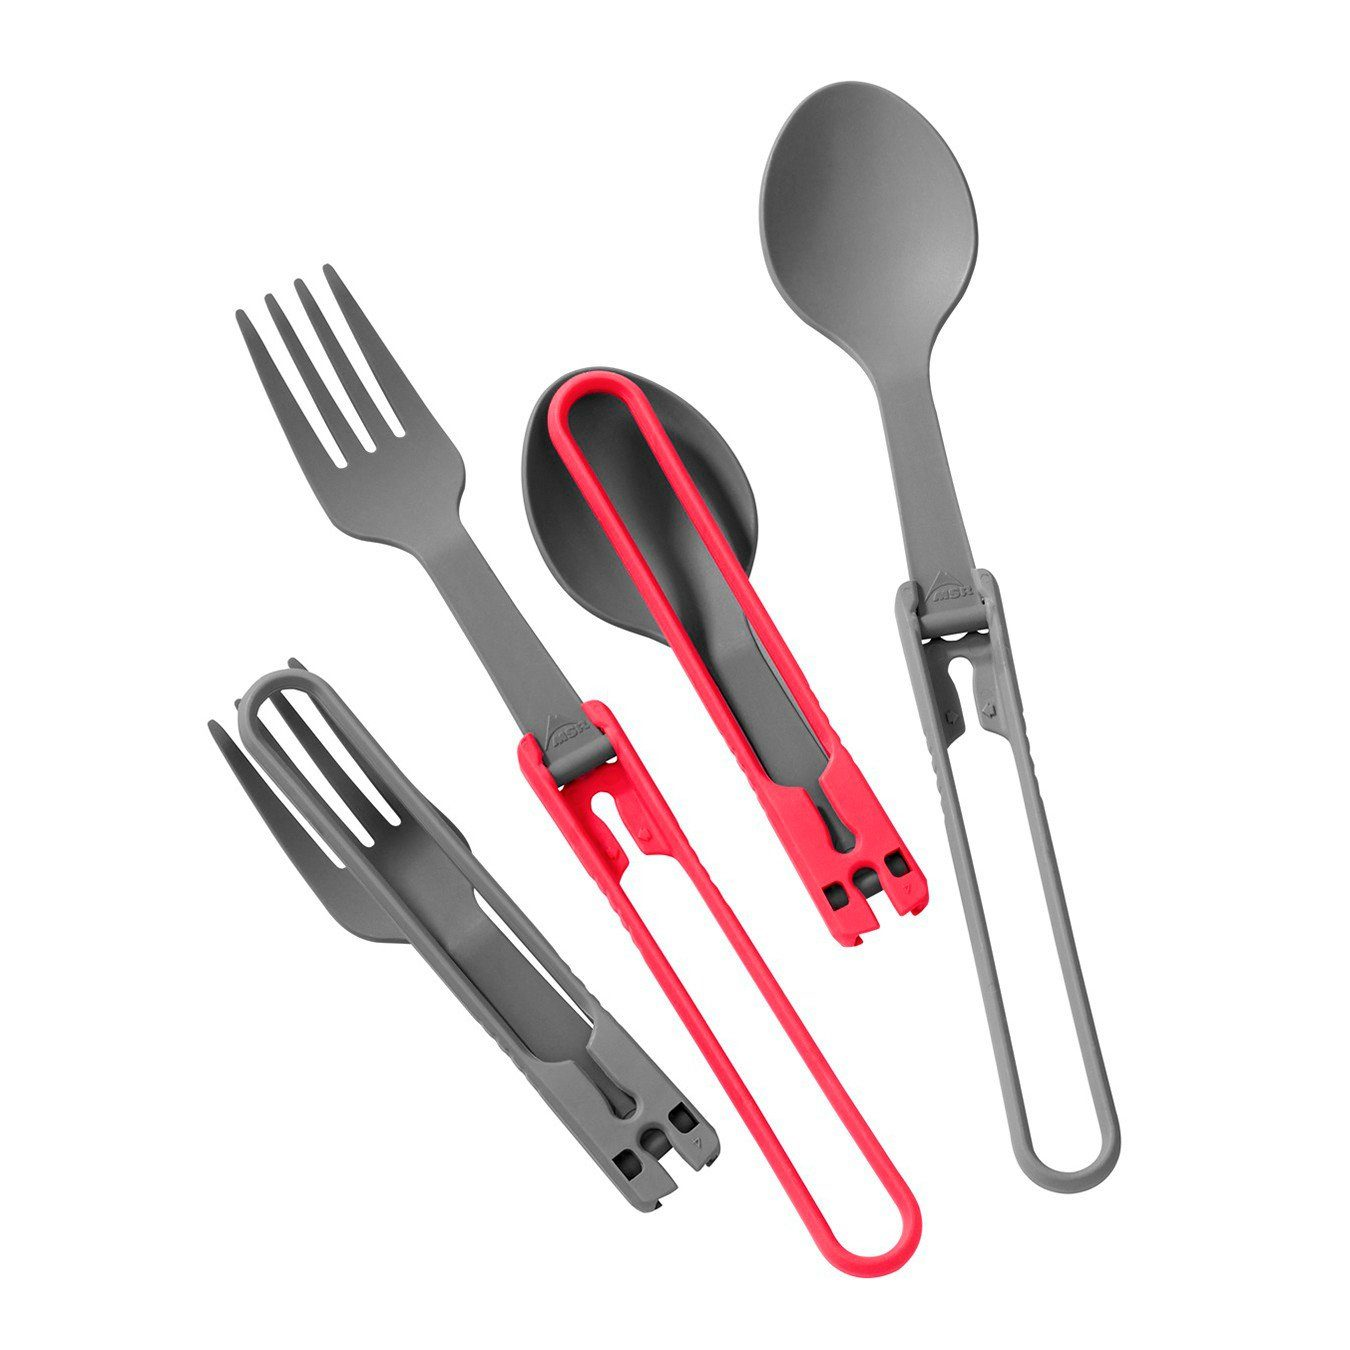 MSR Camping-Geschirr »Utensil Set SpoonsForks red/gray«